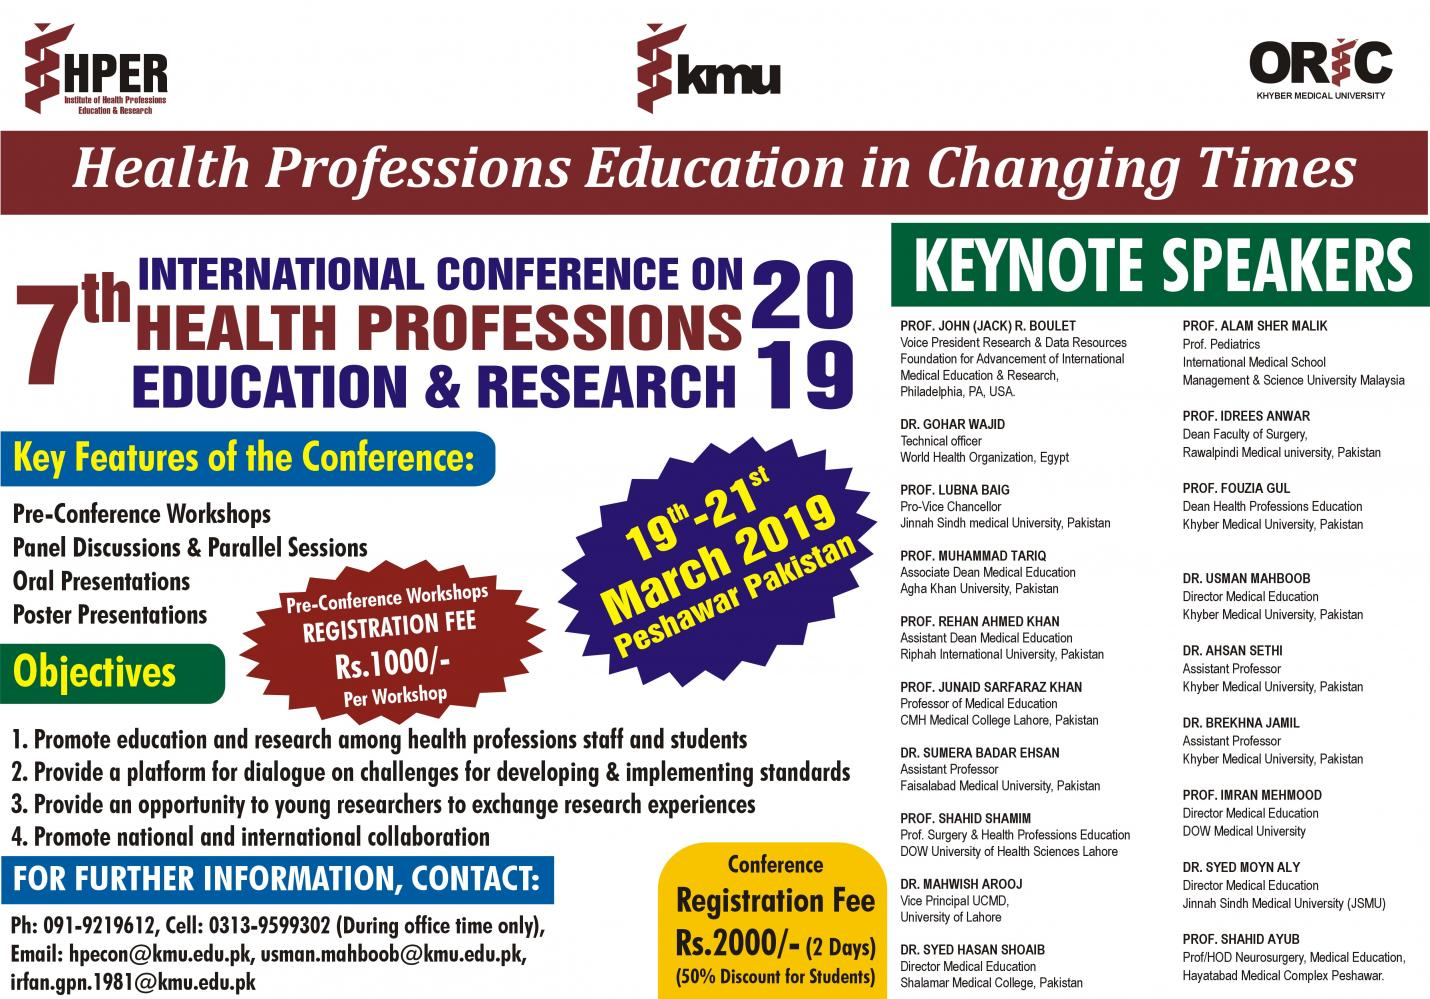 7th INTERNATIONAL CONFERENCE ON HEALTH PROFESSIONS EDUCATION AND